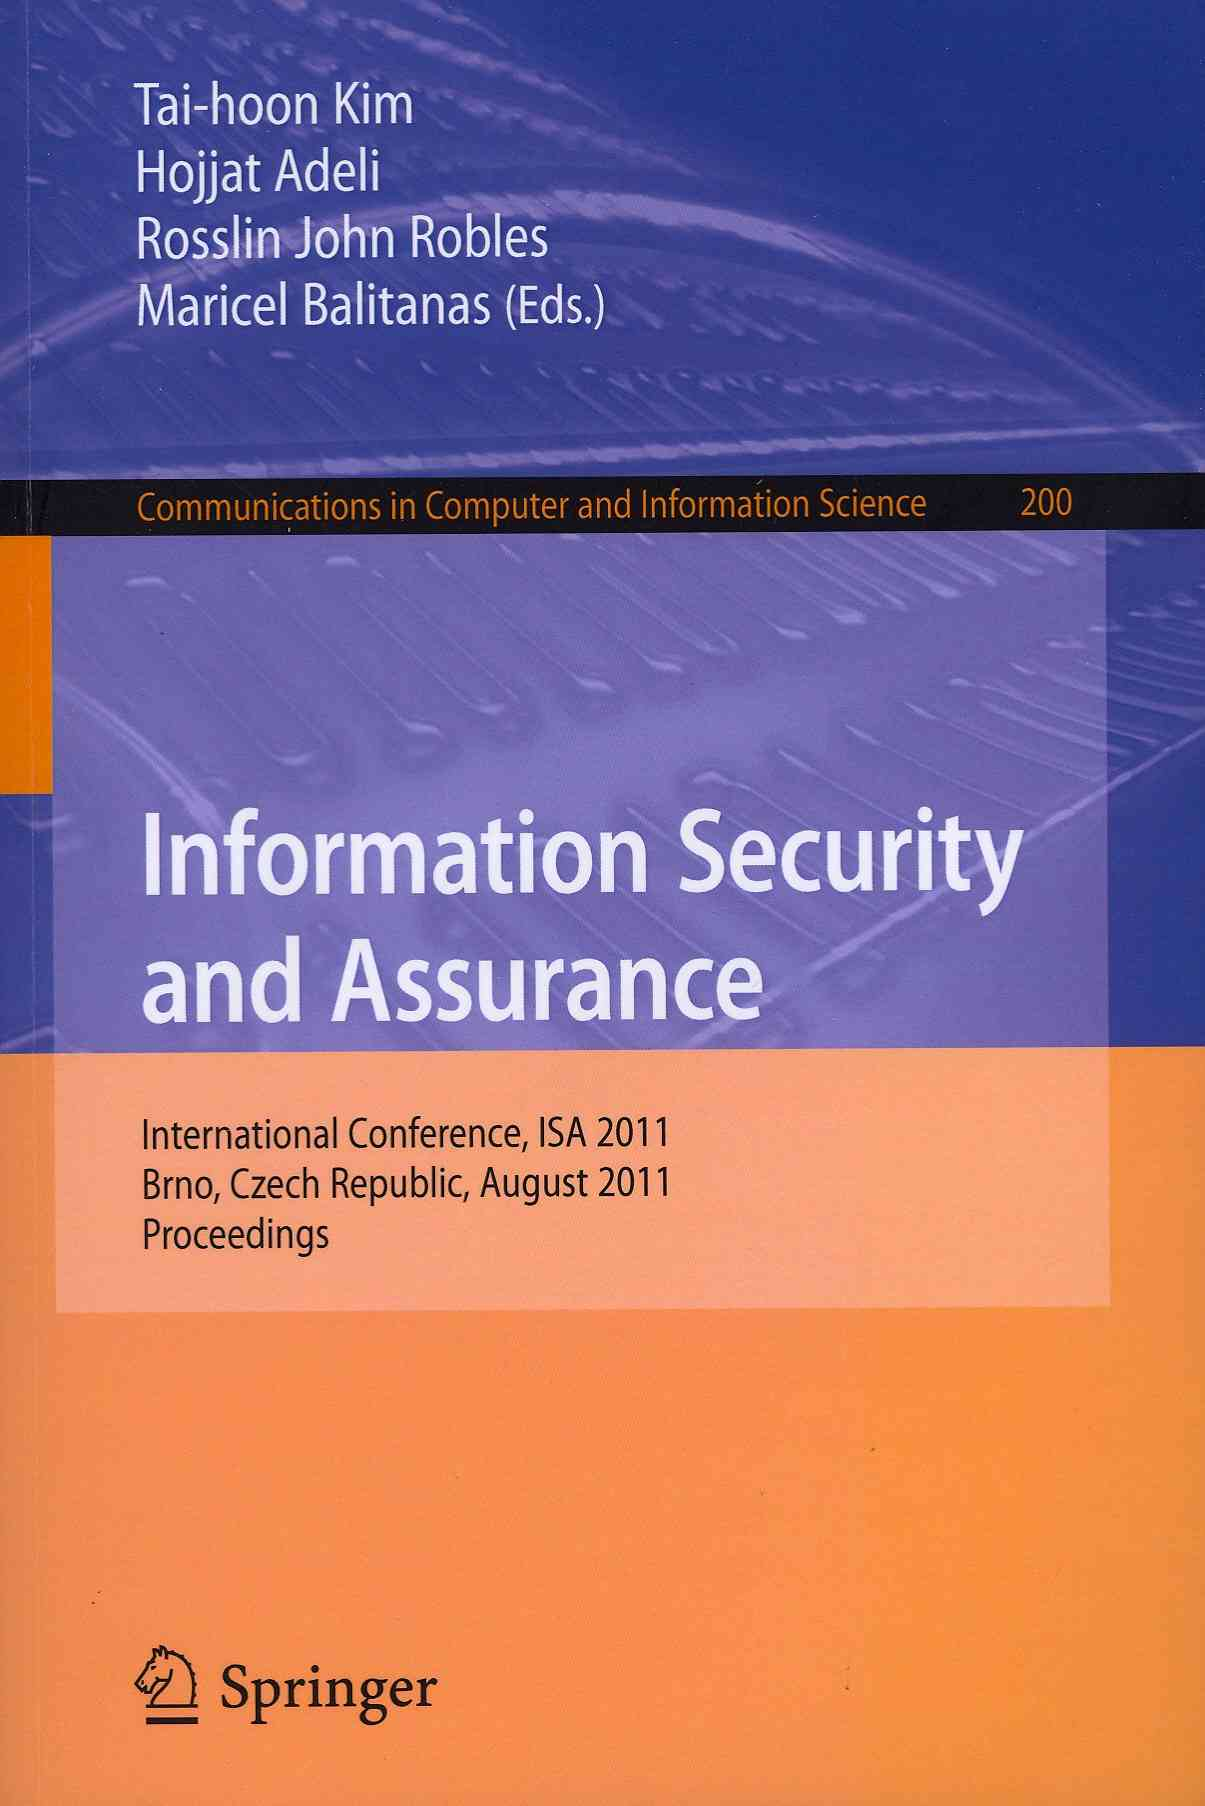 Information Security and Assurance By Kim, Tai-hoon (EDT)/ Adeli, Hojjat (EDT)/ Robles, Rosslin John (EDT)/ Balitanas, Maricel (EDT)